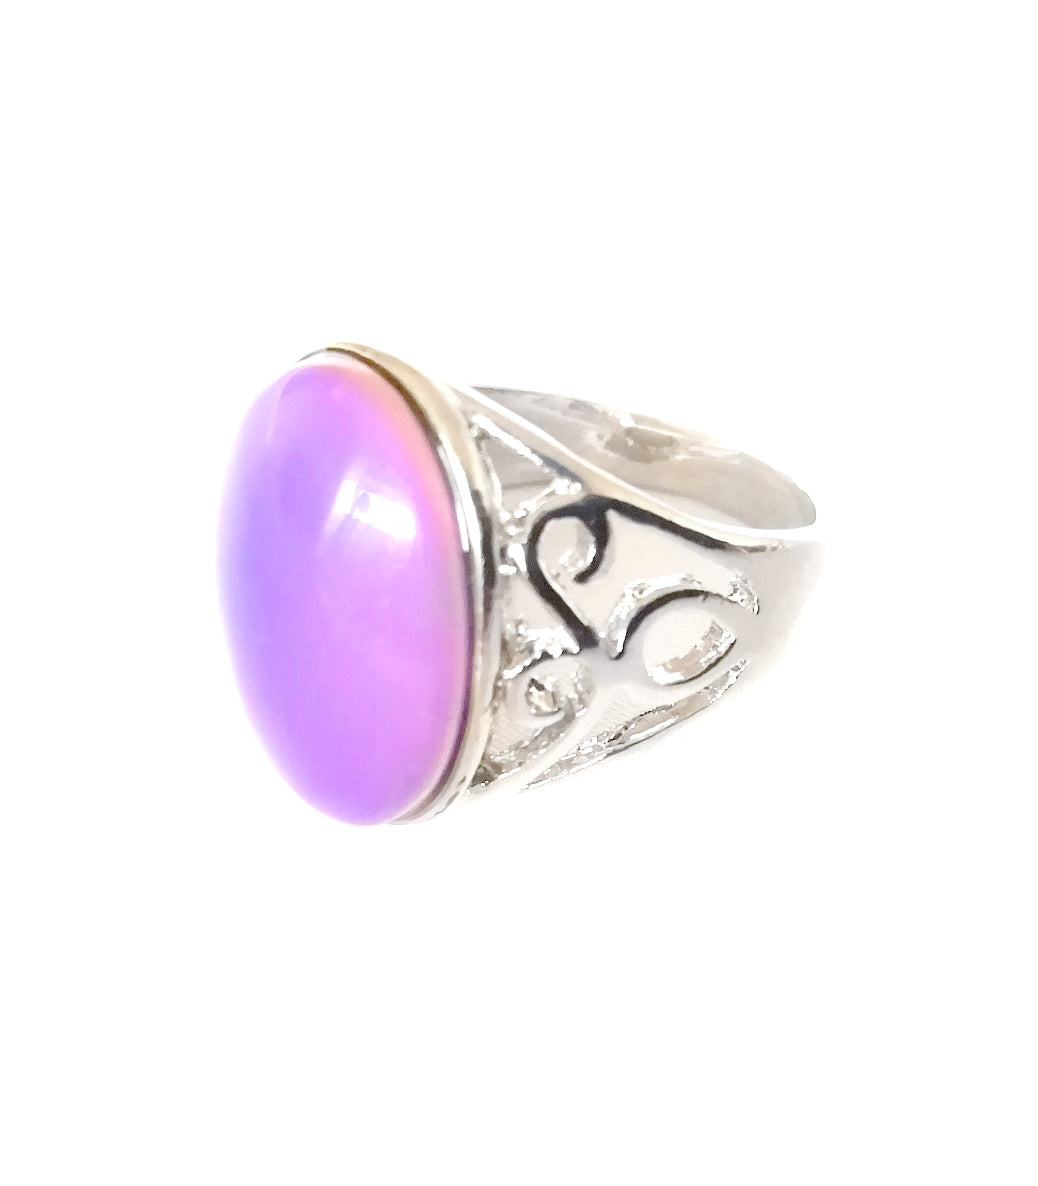 mood ring with a pink mood and a silver shade band